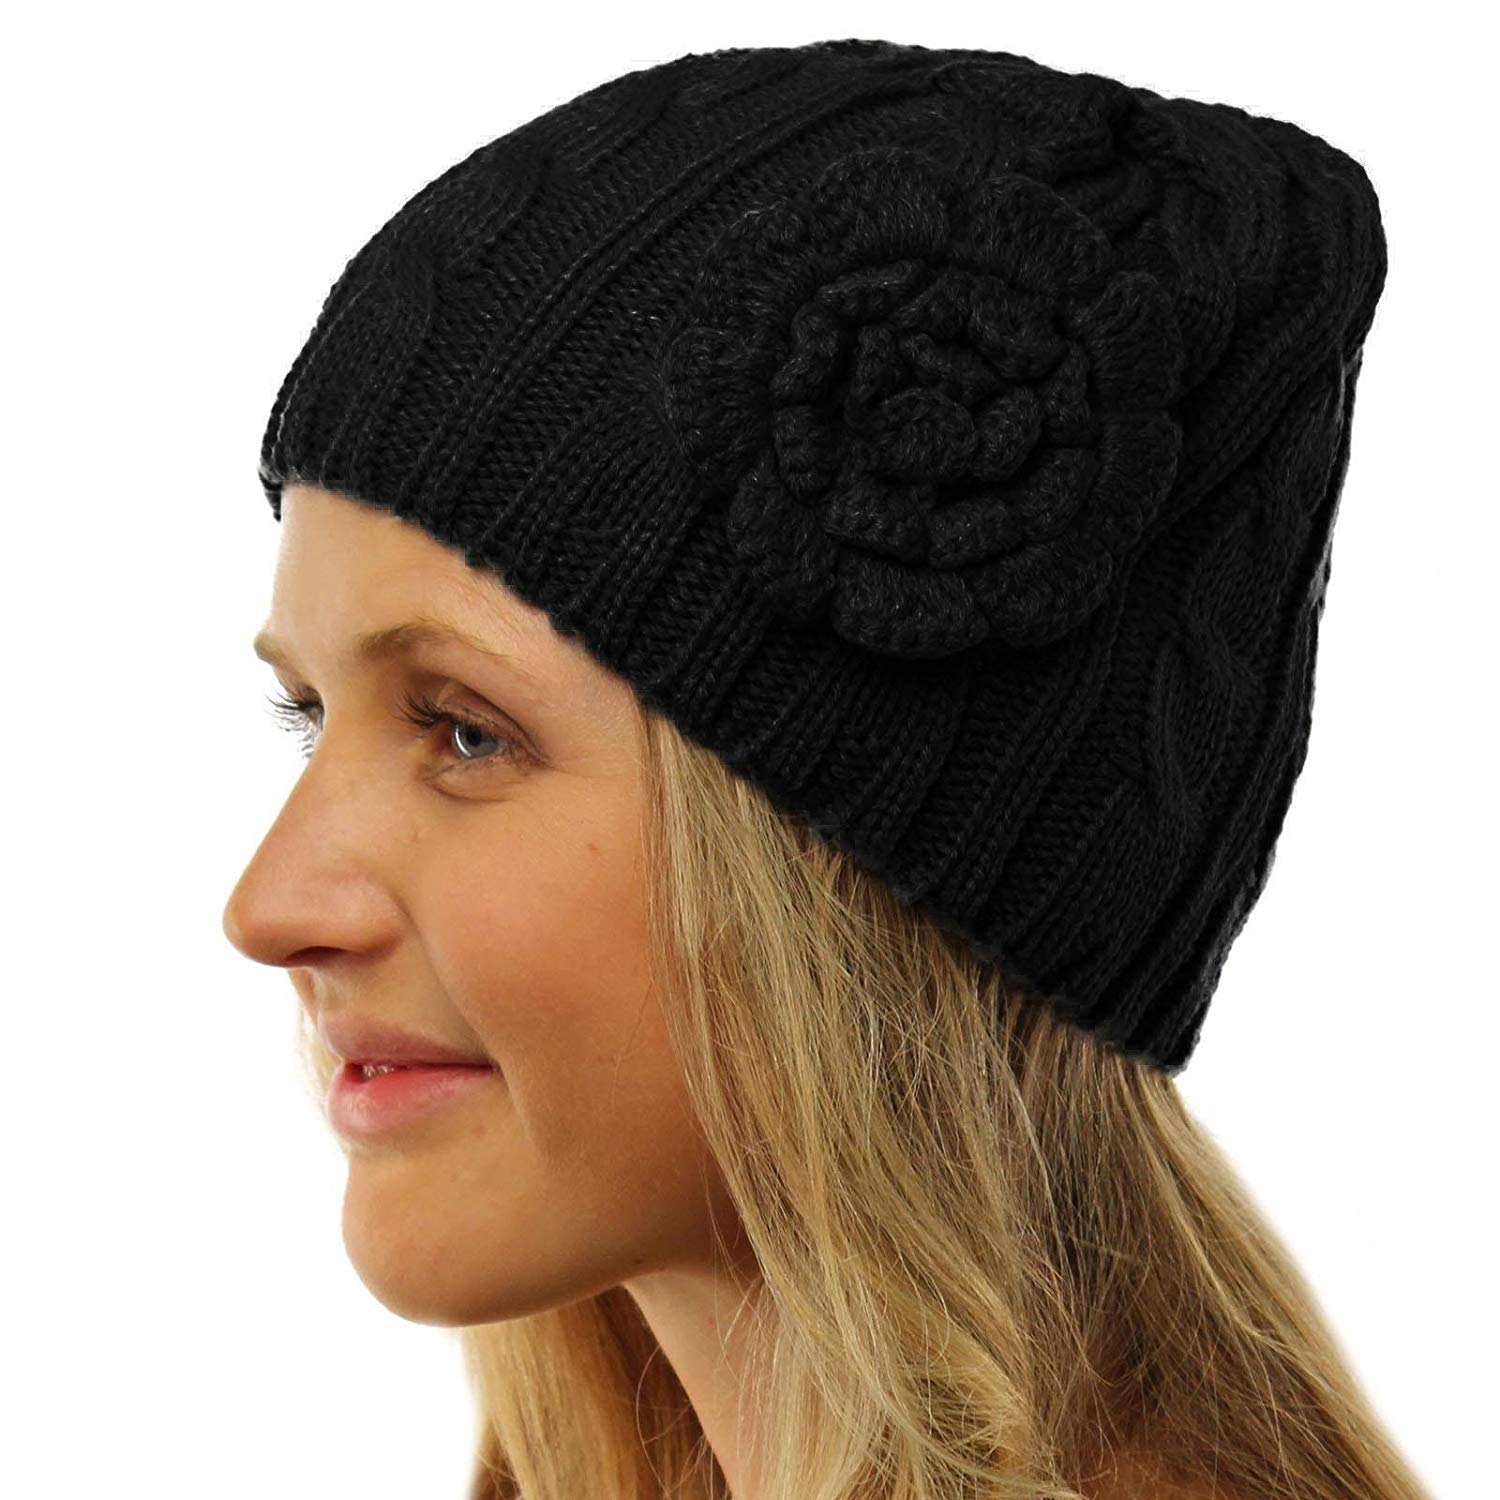 SK Hat shop Ladies Winter Floral Crochet Soft Stretchy Cable Knit Skull Beanie Hat Cap